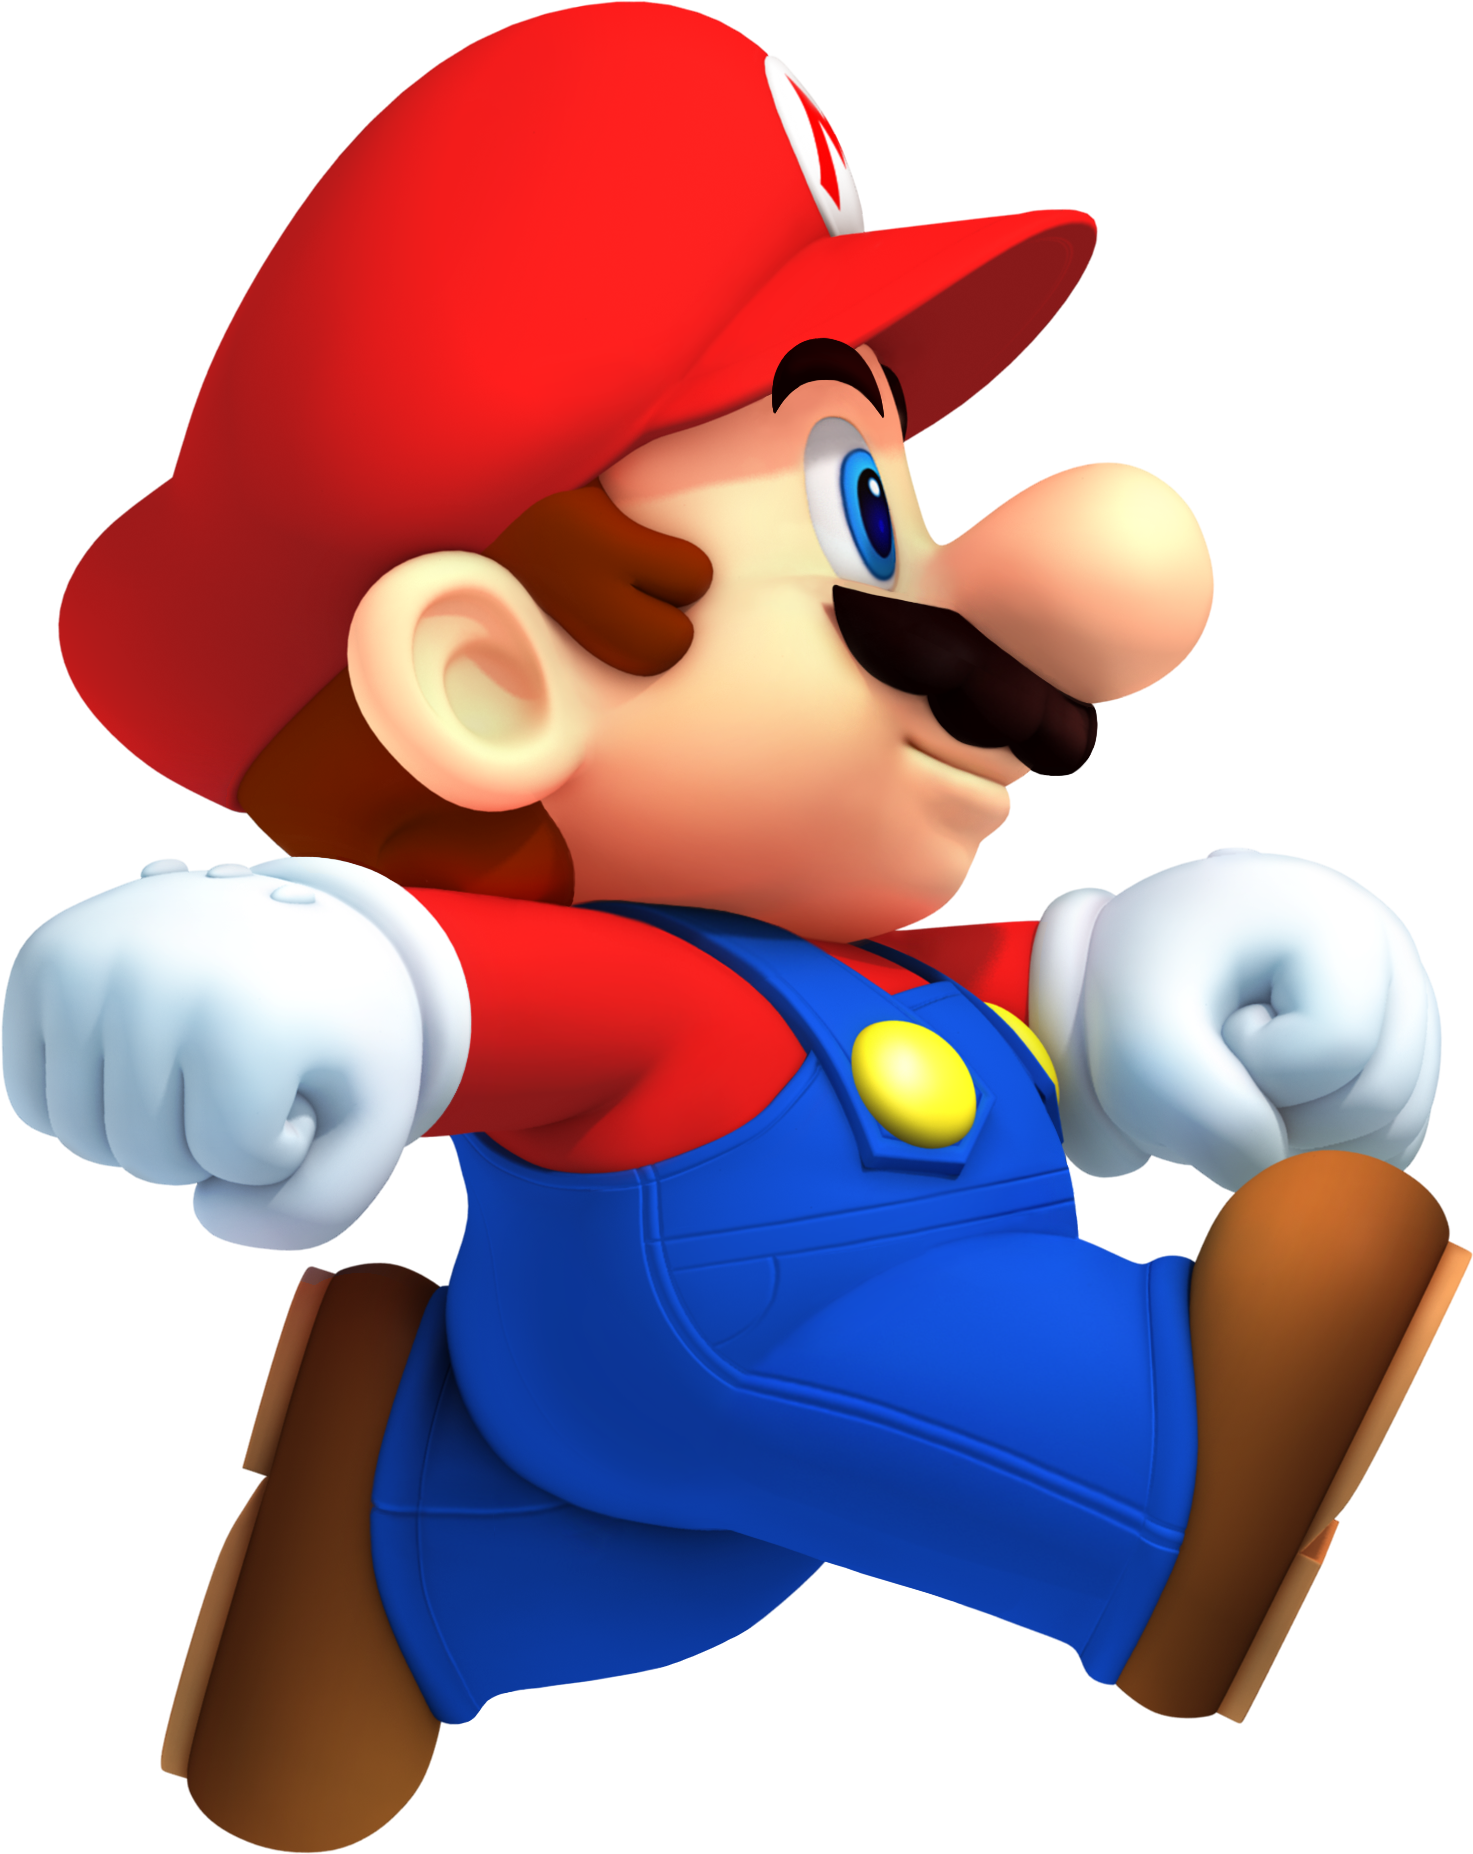 Mario Transparent Background - PNG Images